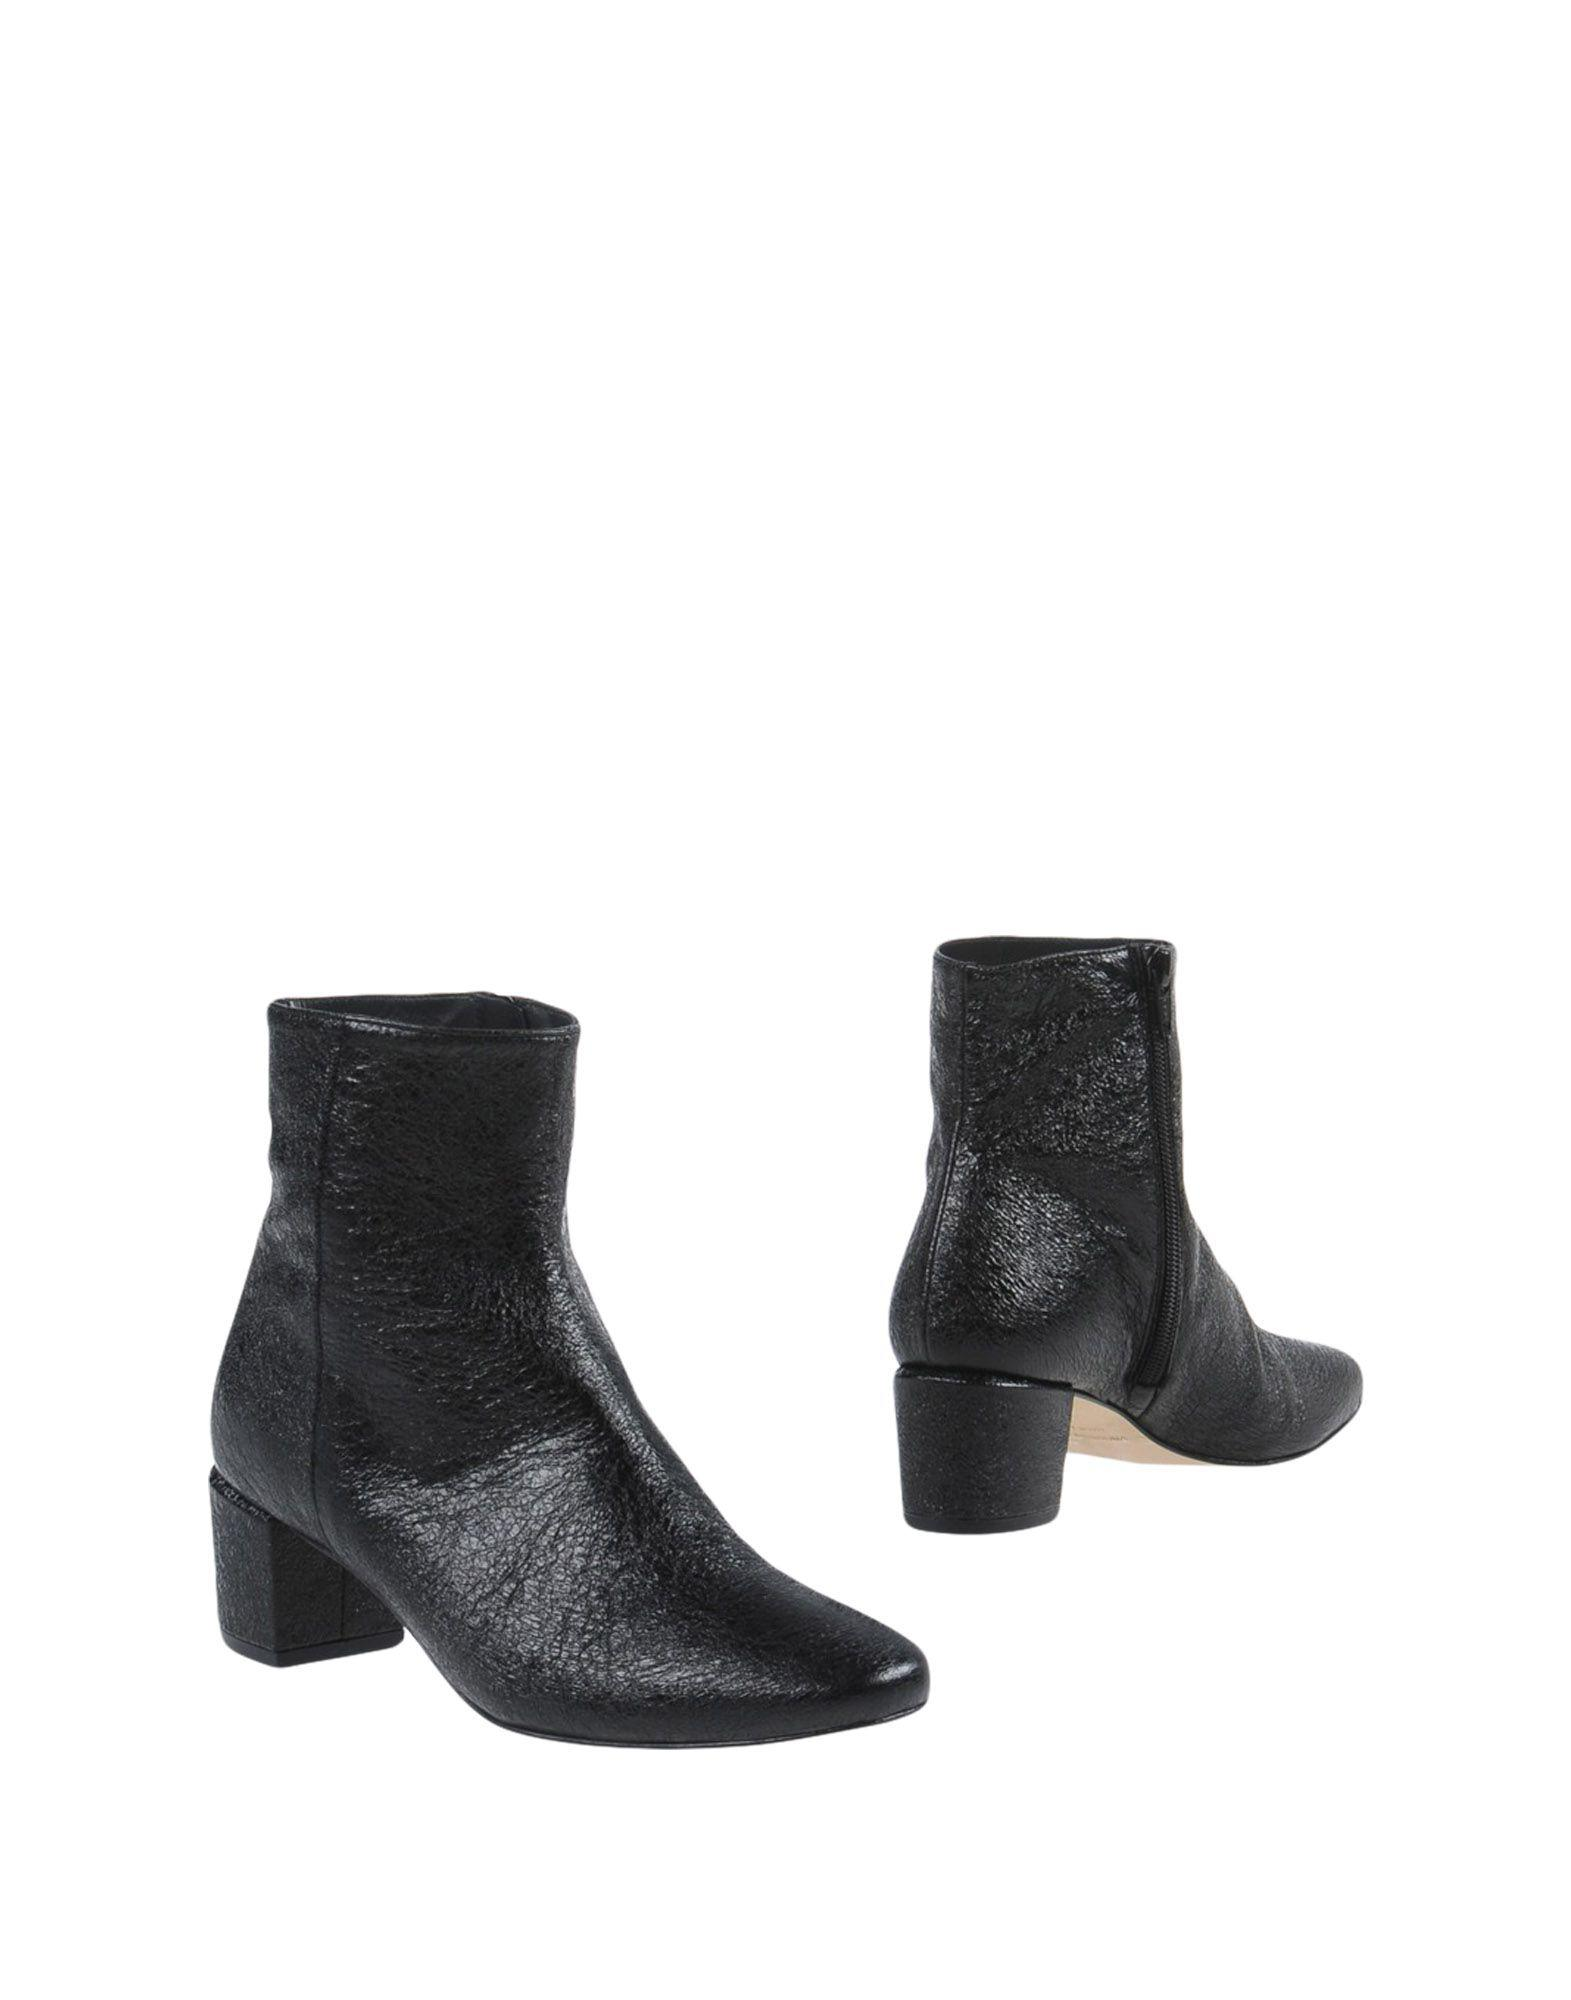 for cheap price Vanessa Bruno Round-Toe Suede Ankle Boots top quality online cheap for sale clearance big sale discount purchase E9fUoAZKk